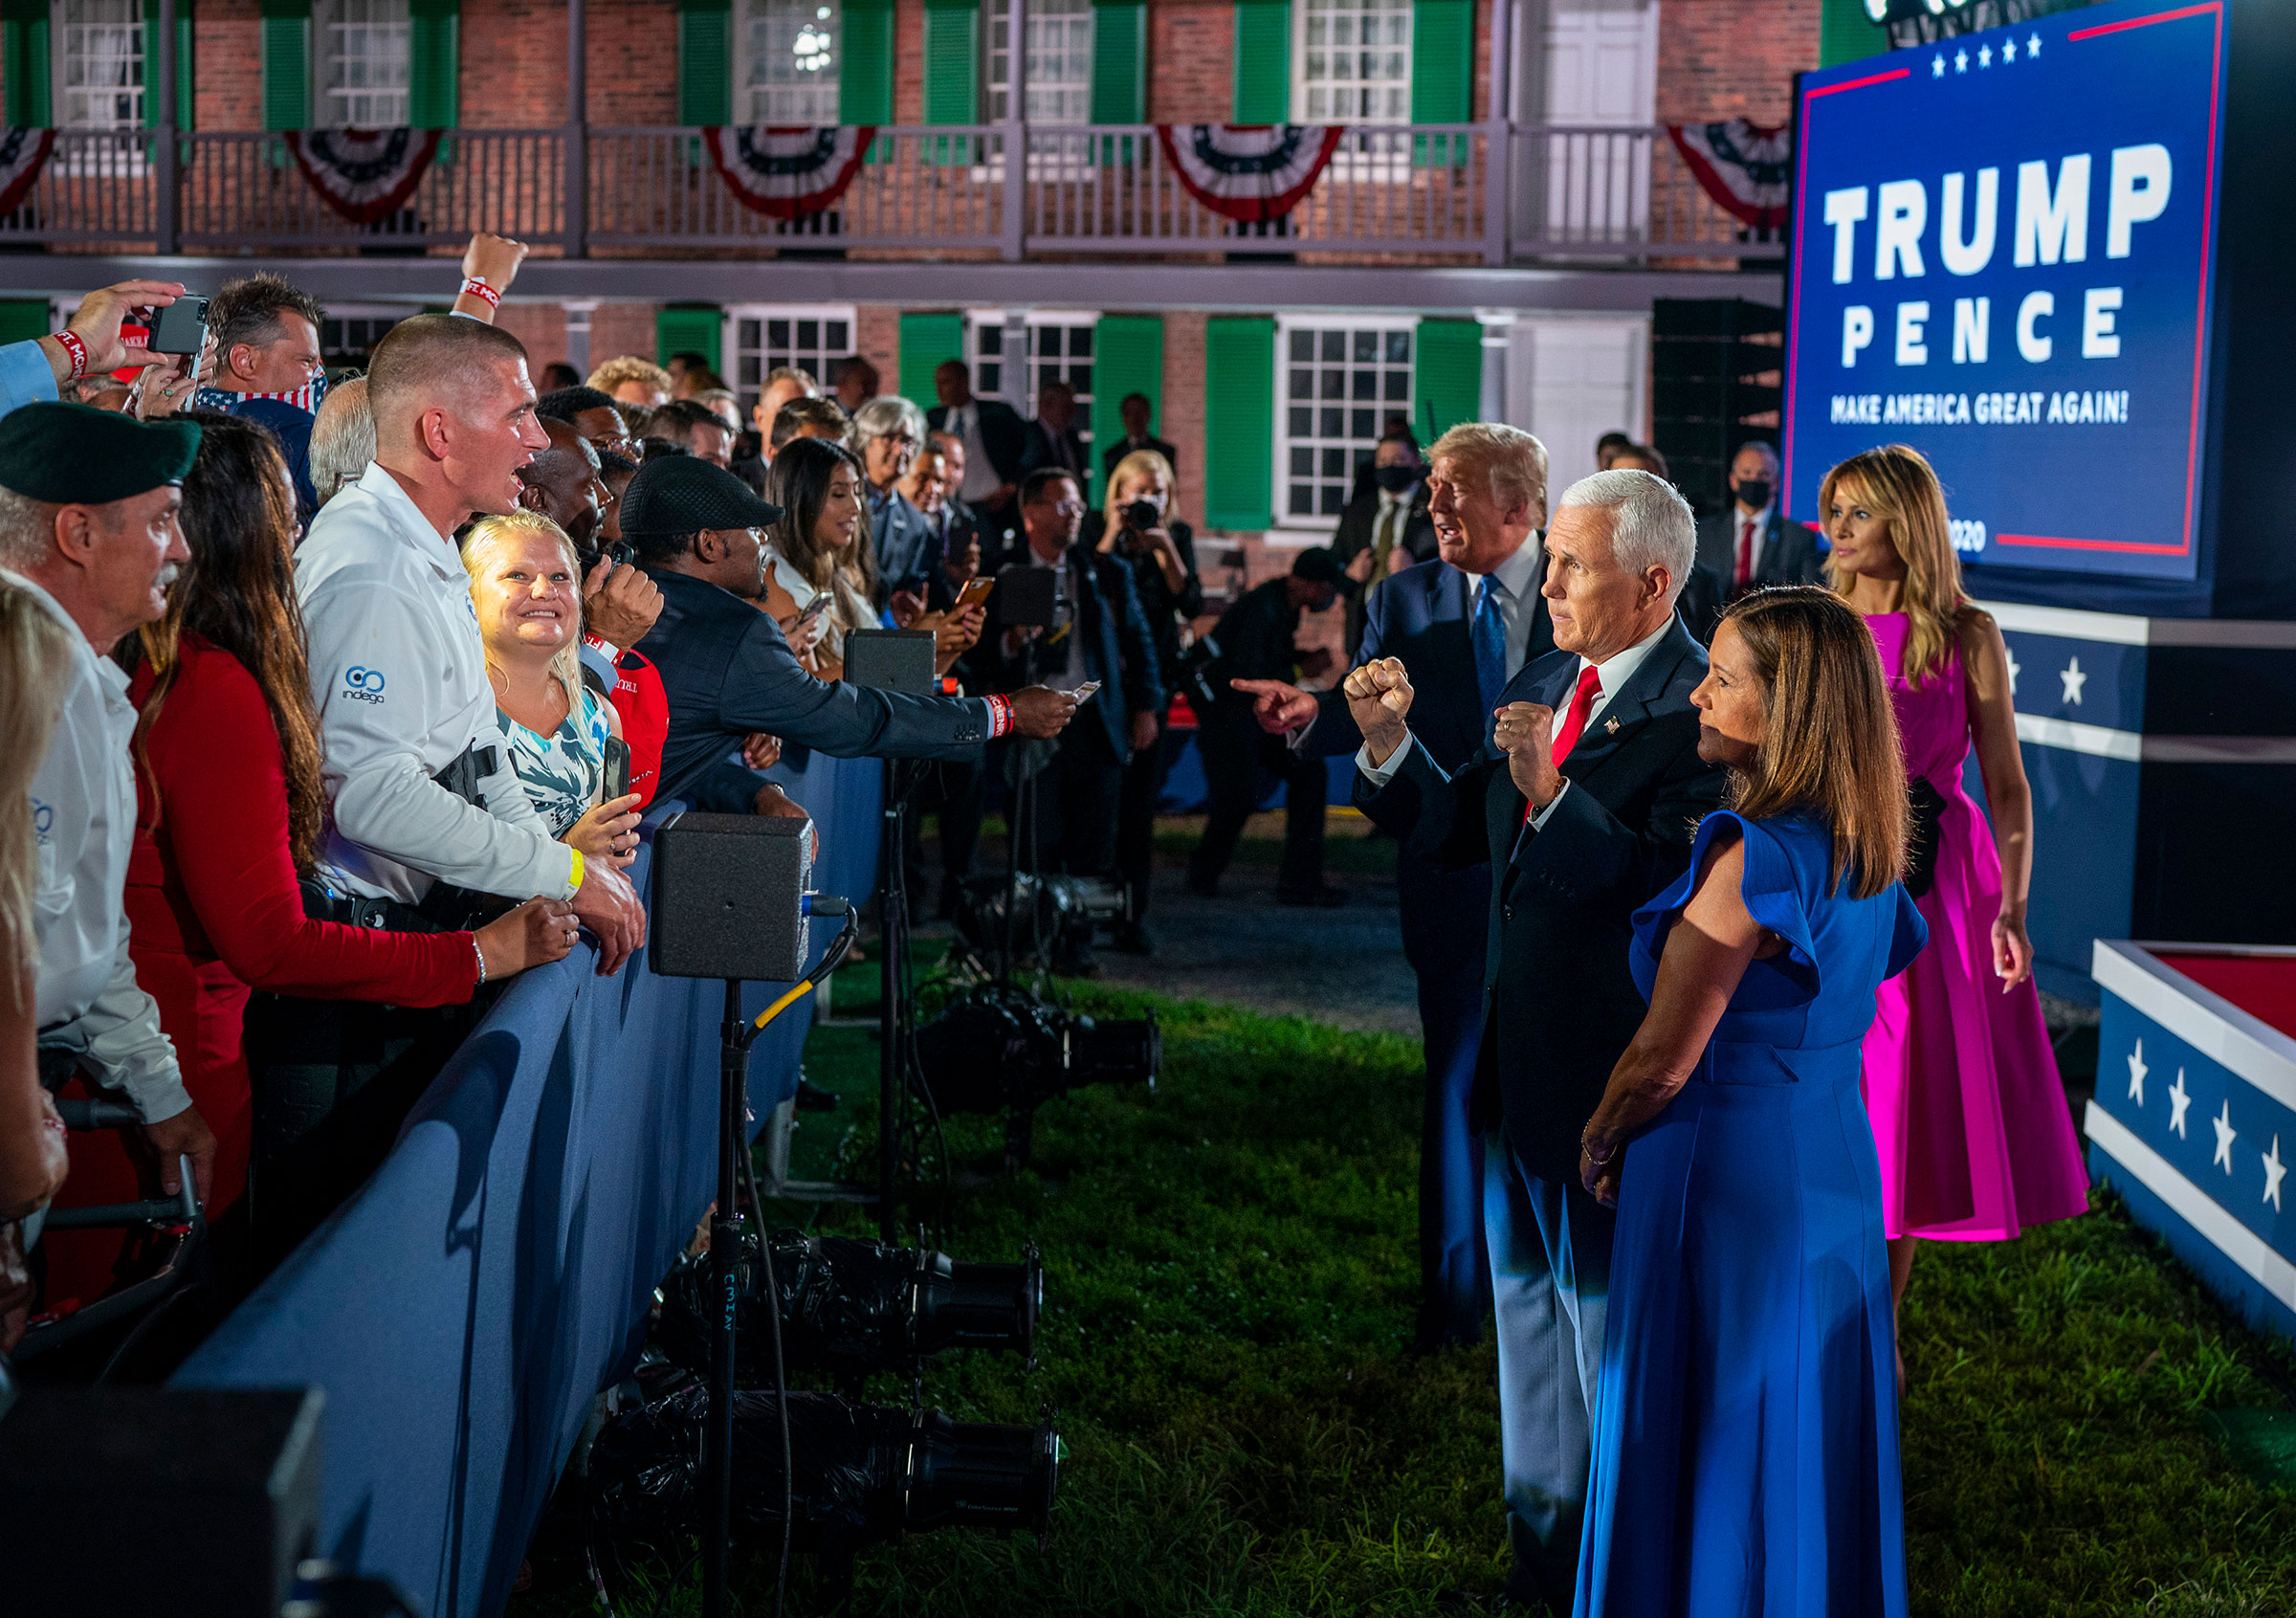 President Donald Trump and first lady Melania Trump, join Vice President Mike Pence and is wife, Karen Pence, while greeting attendees at Fort McHenry in Baltimore, during the Republican National Convention, Aug. 26, 2020.